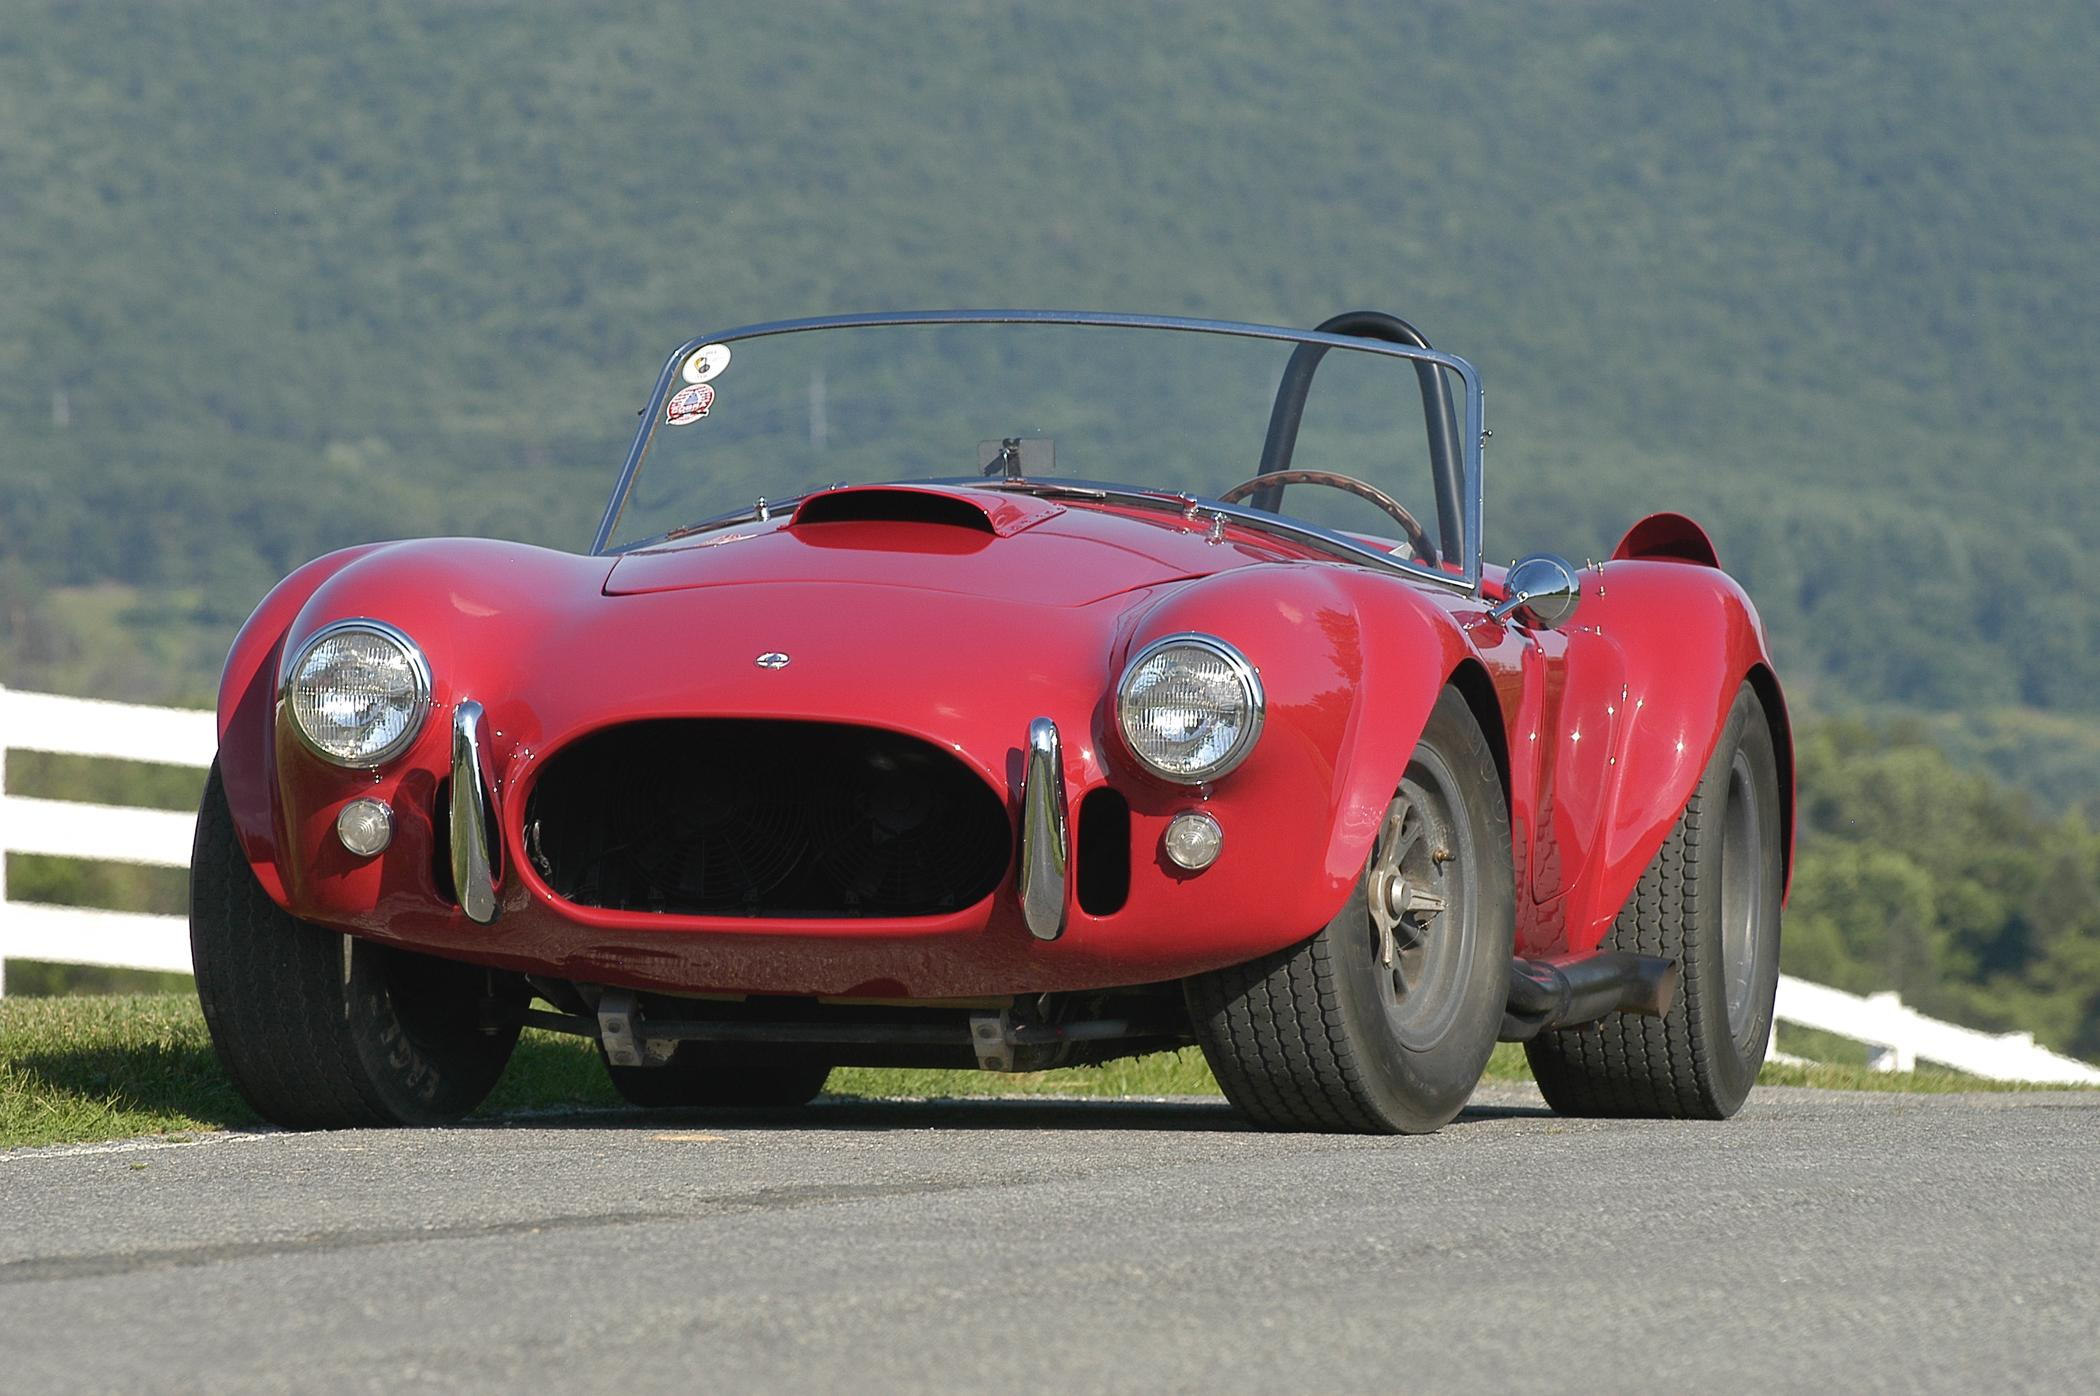 4.-1966-Shelby-Cobra-427-Roadster.JPG (2100×1396)